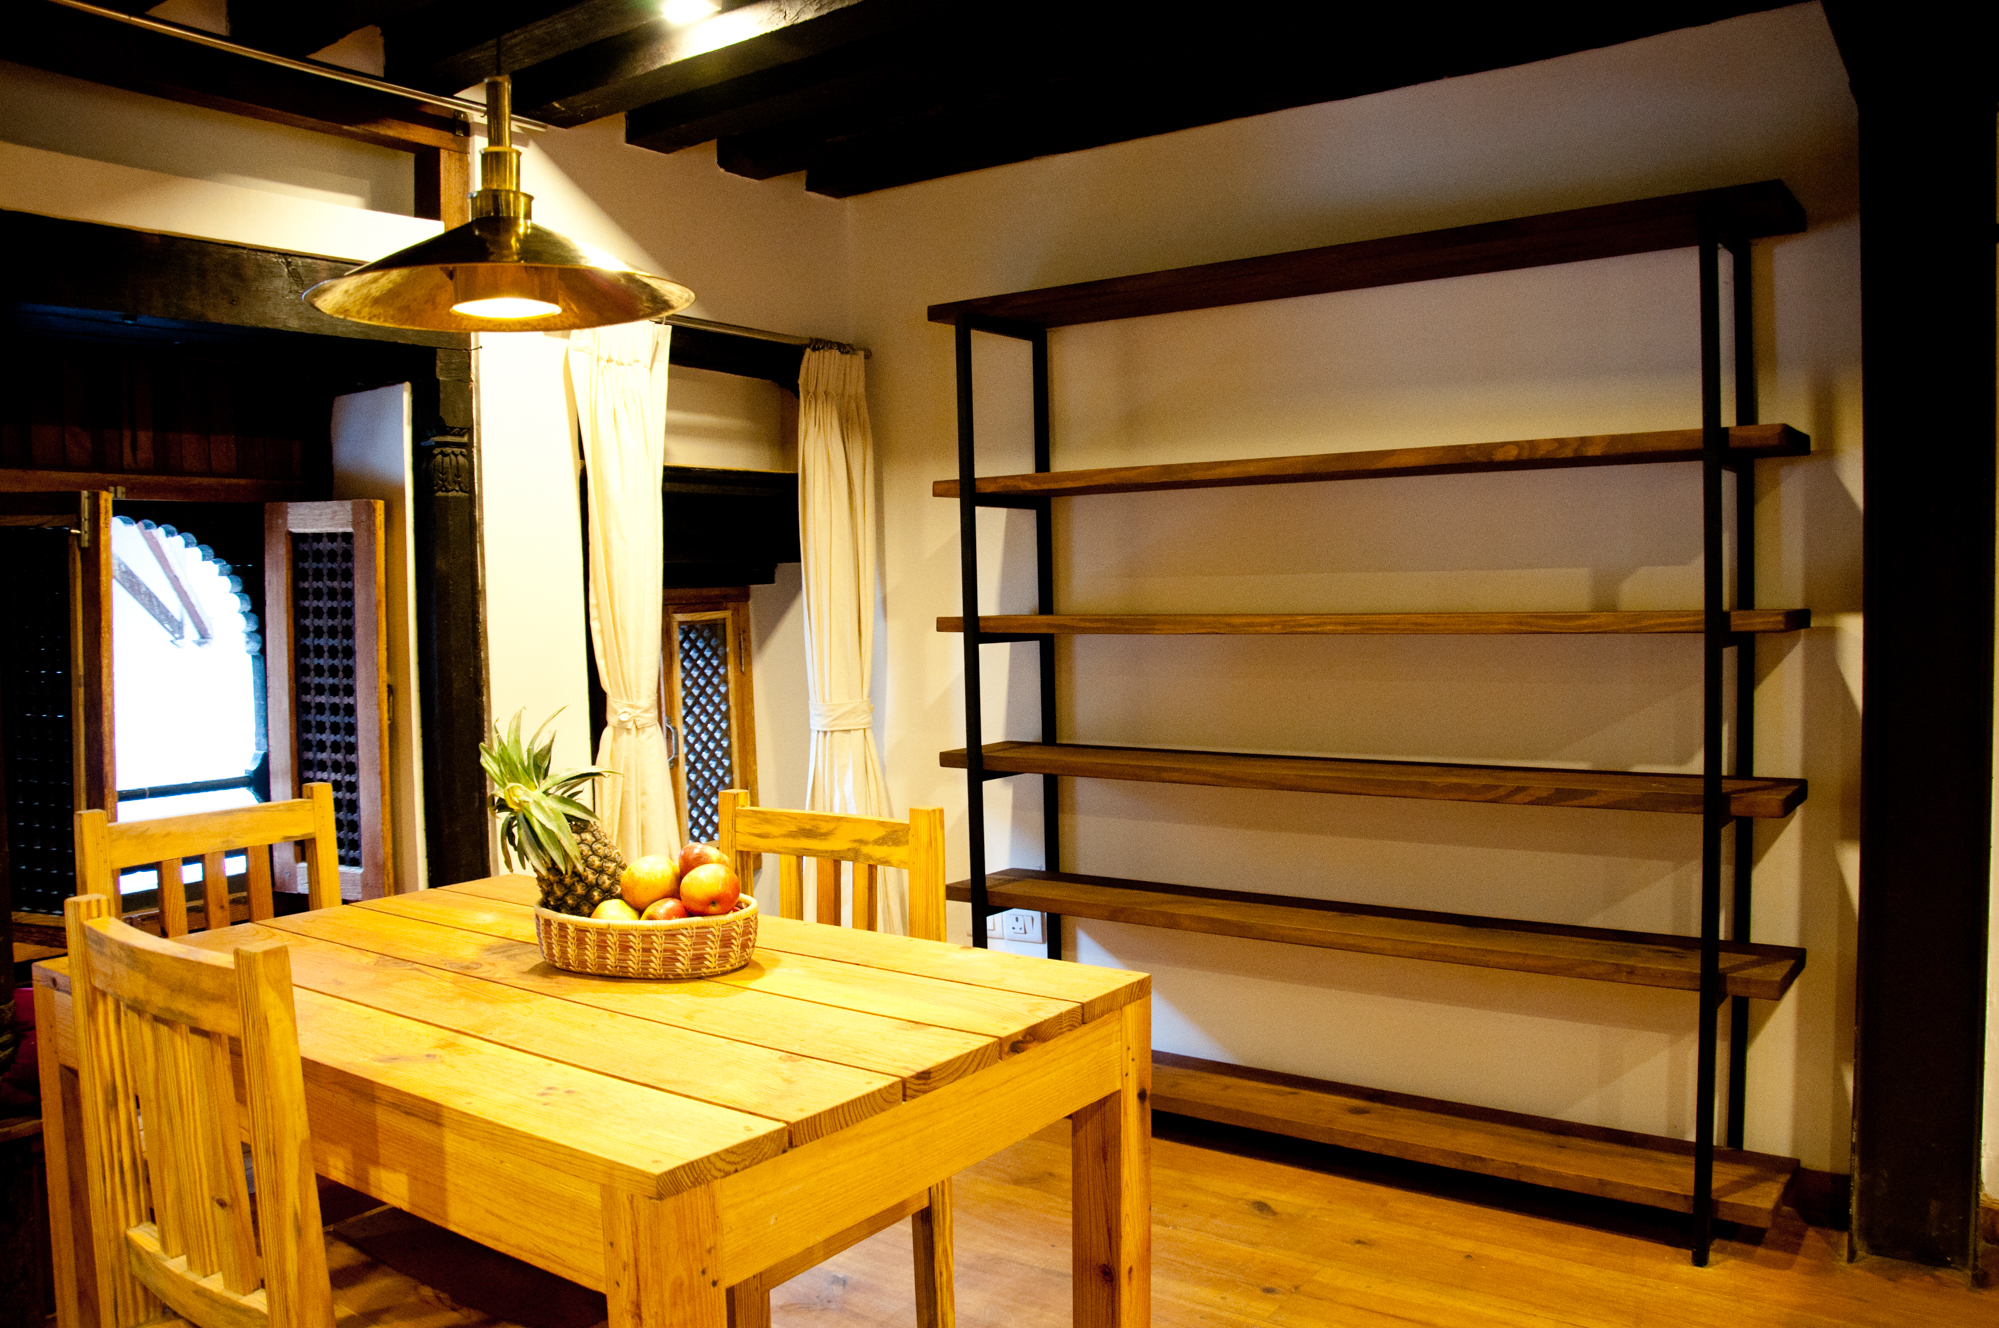 Pinewood with stain - Overhang shelves